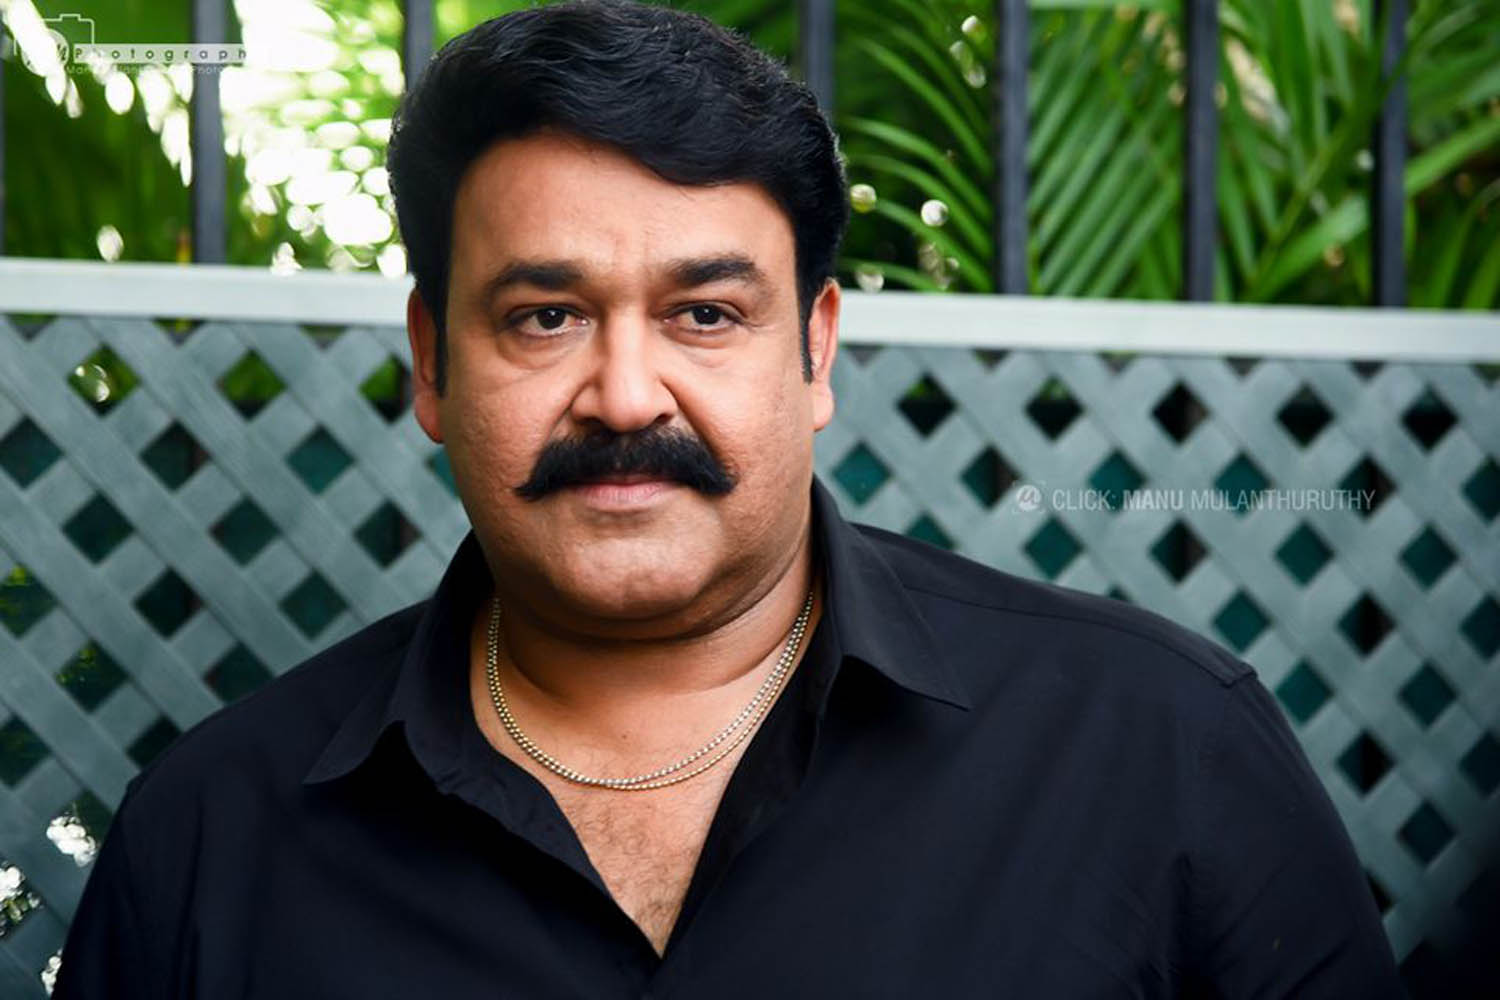 mohanlal latest news, mohanlal next movie, mohanlal 2017 movies, mohanlal upcoming movie list, 1971 Beyond Borders